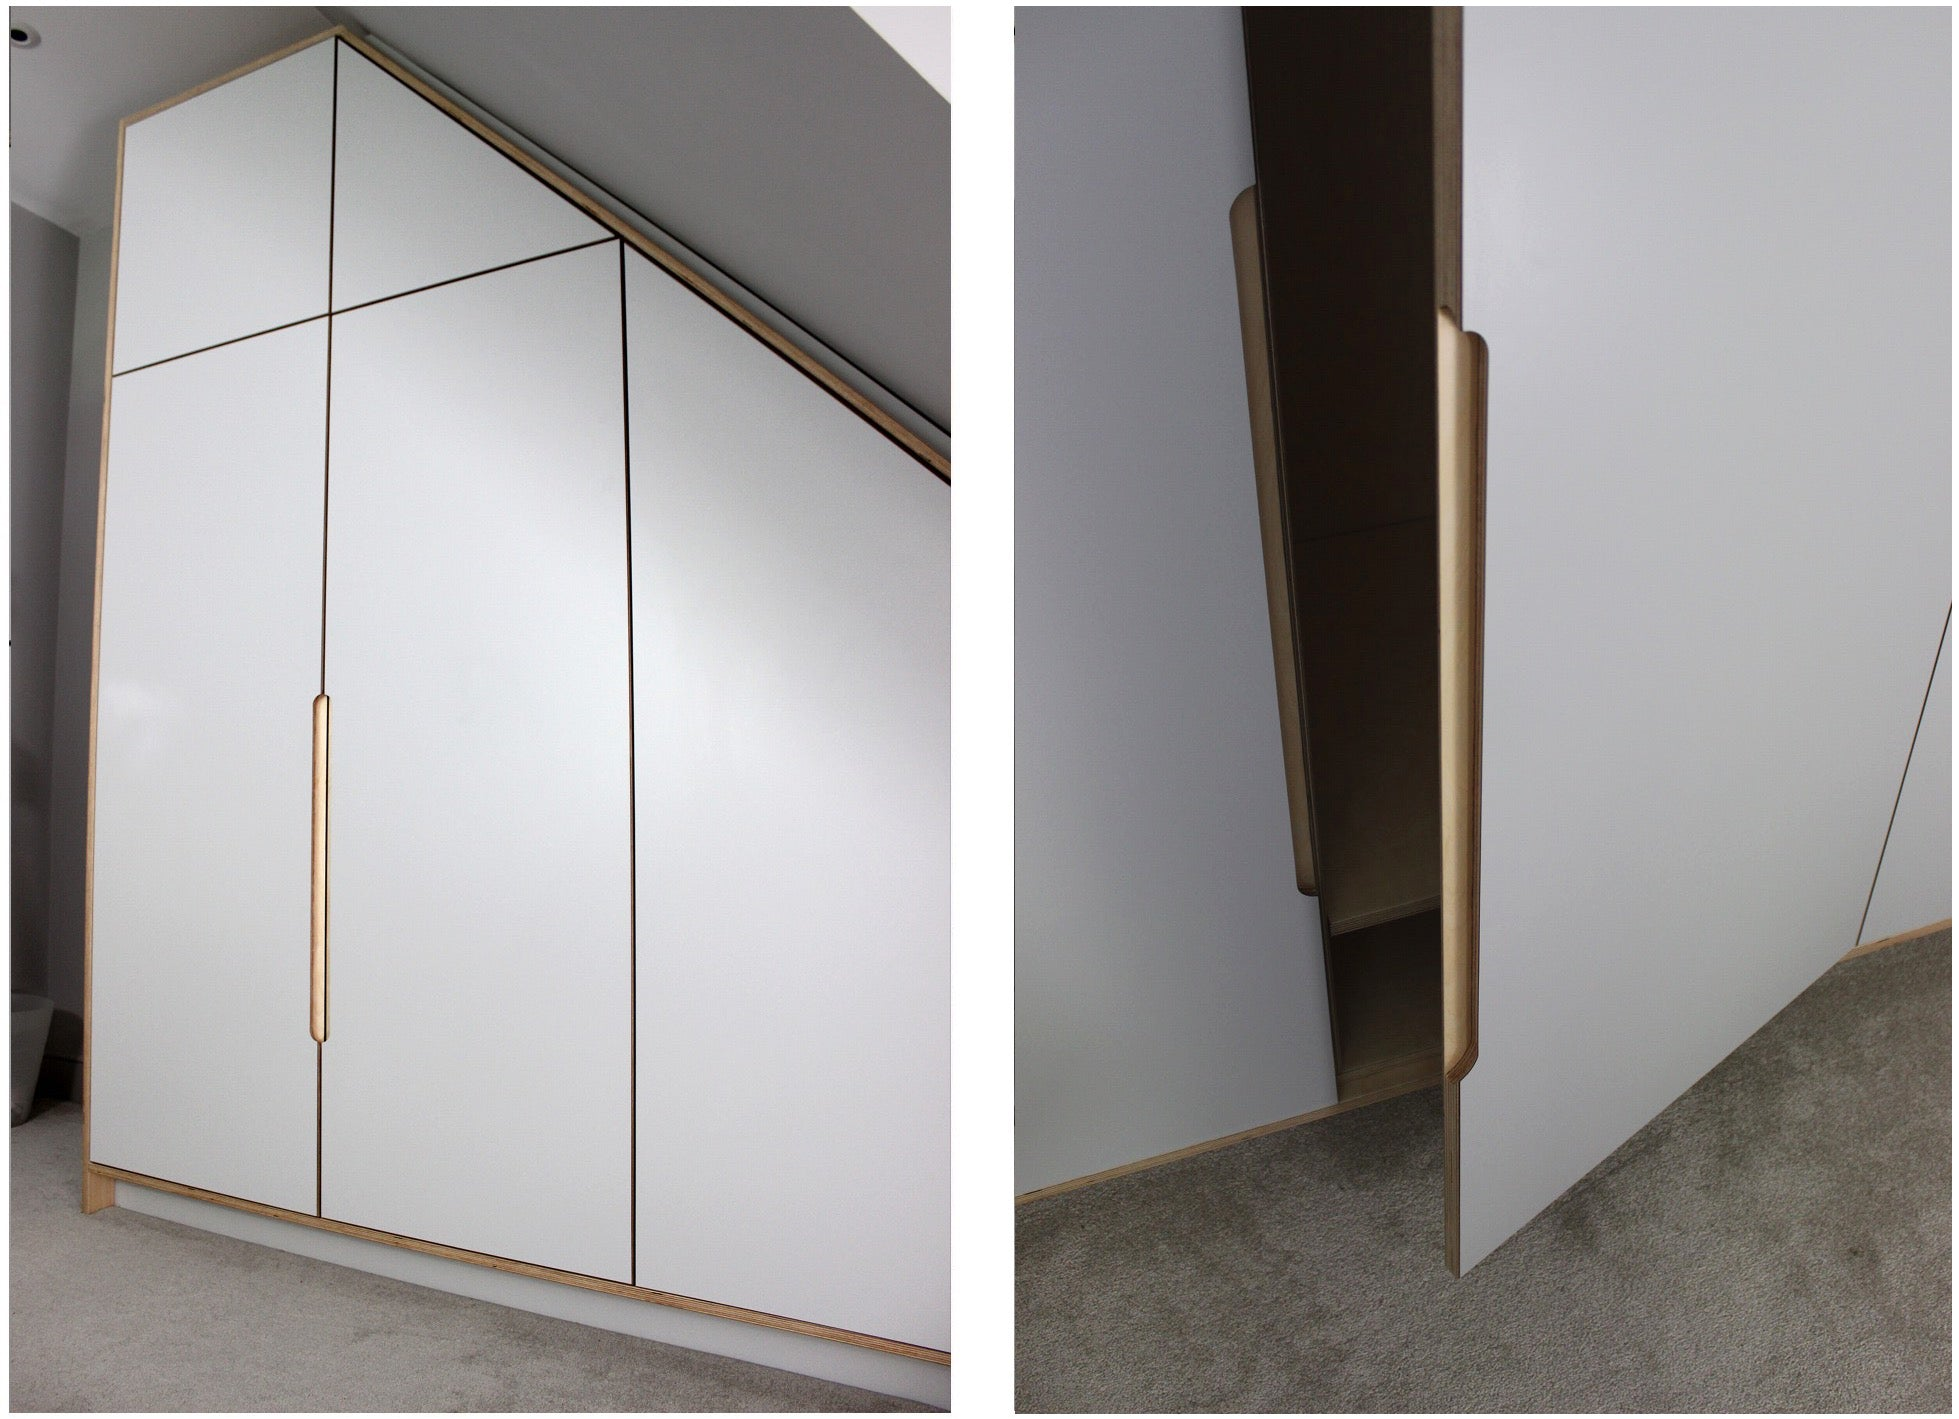 Bespoke laminated plywood fitted wardrobe. Bespoke furniture made by Jon Grant London. East London.